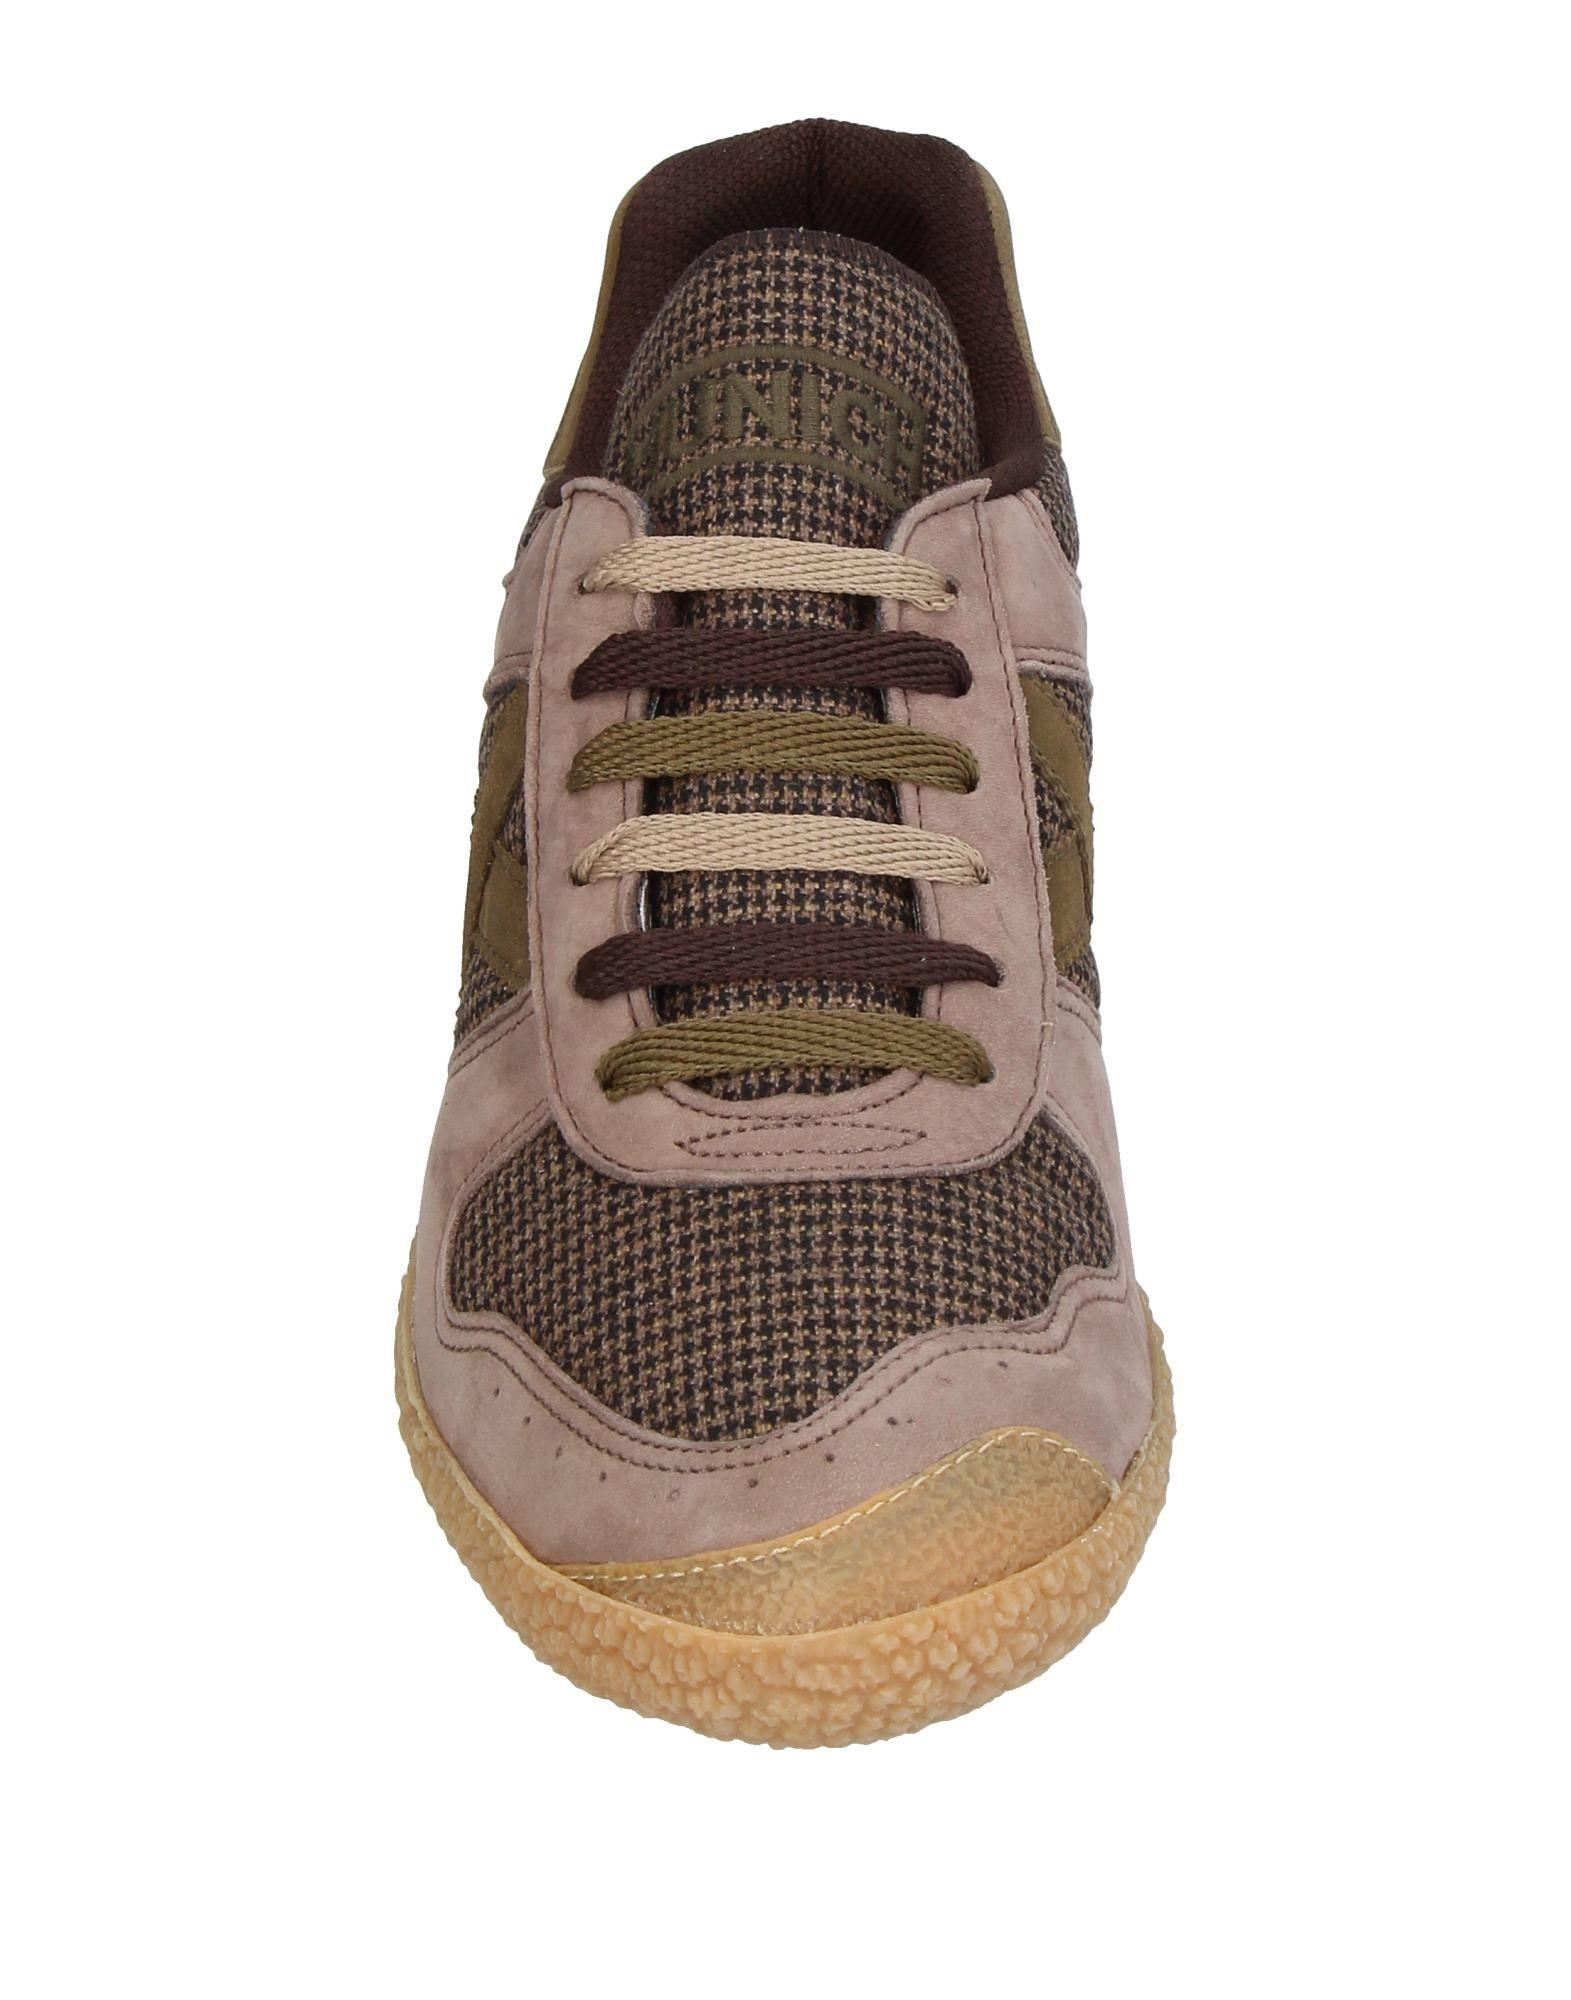 Munich Flannel Low-tops & Sneakers in Light Brown (Brown) for Men